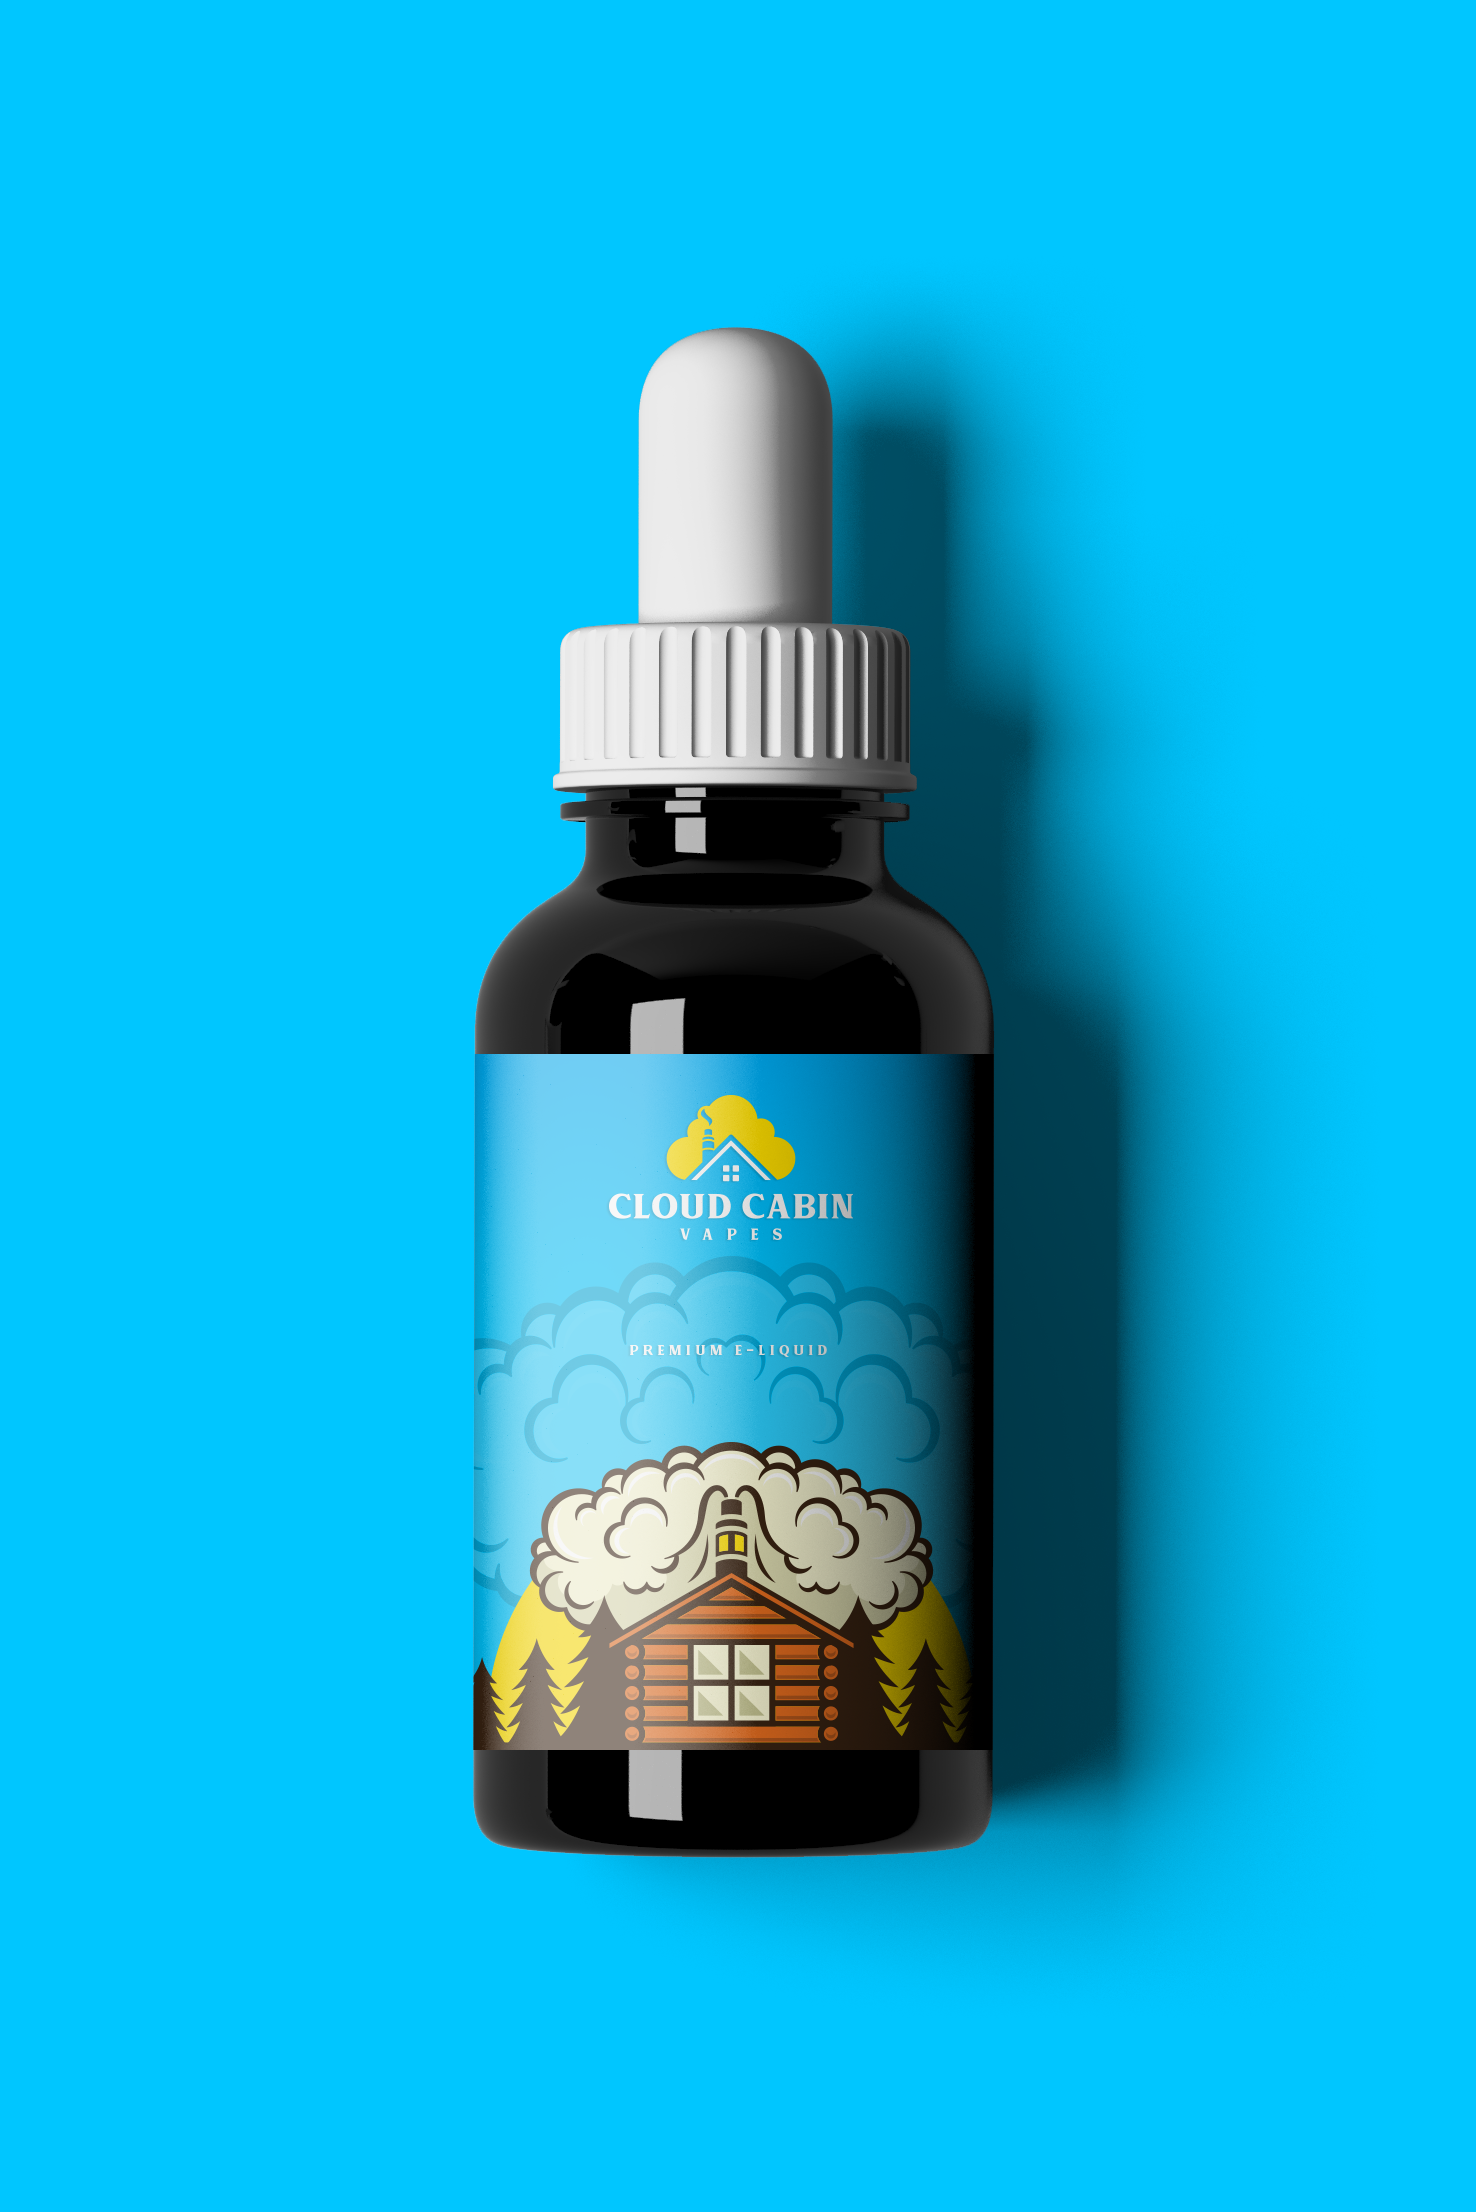 Cloud Cabin Vape needs a company logo, and future logos for our juice lines. Let's work